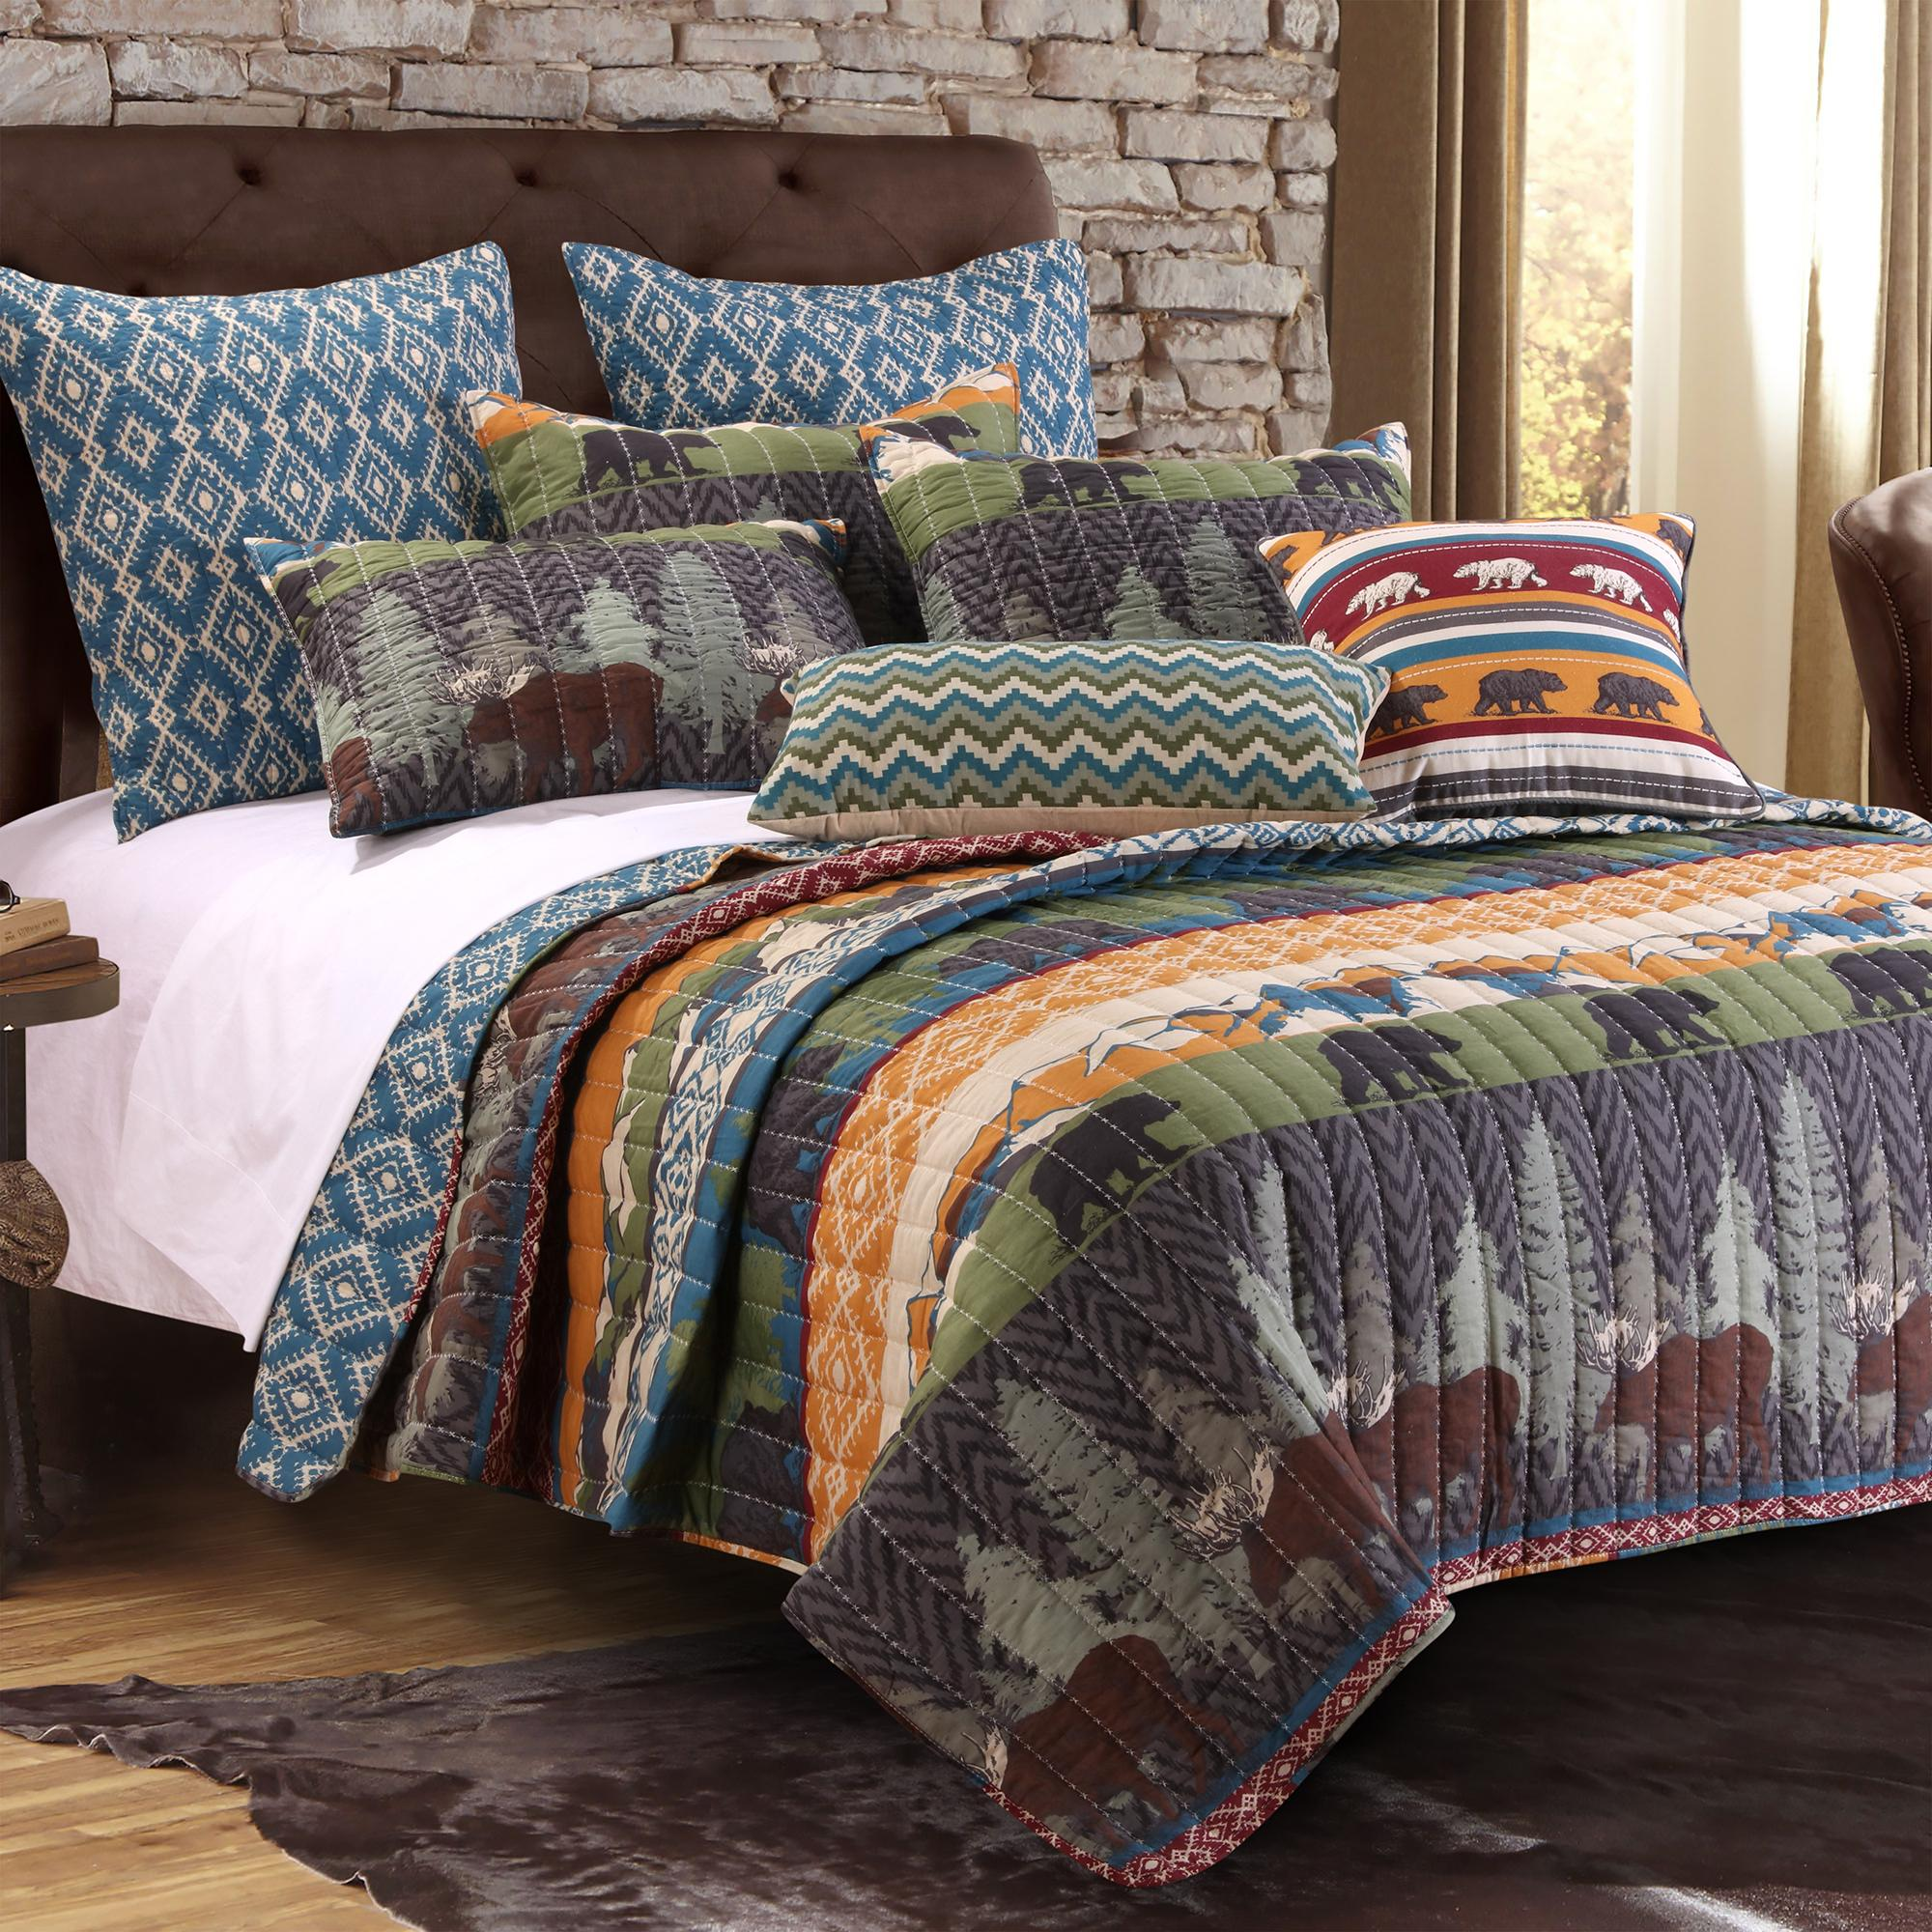 picturesque better homes and gardens quilts. View larger Amazon com  Greenland Home 3 Piece Rustic Lodge Quilt Set Full